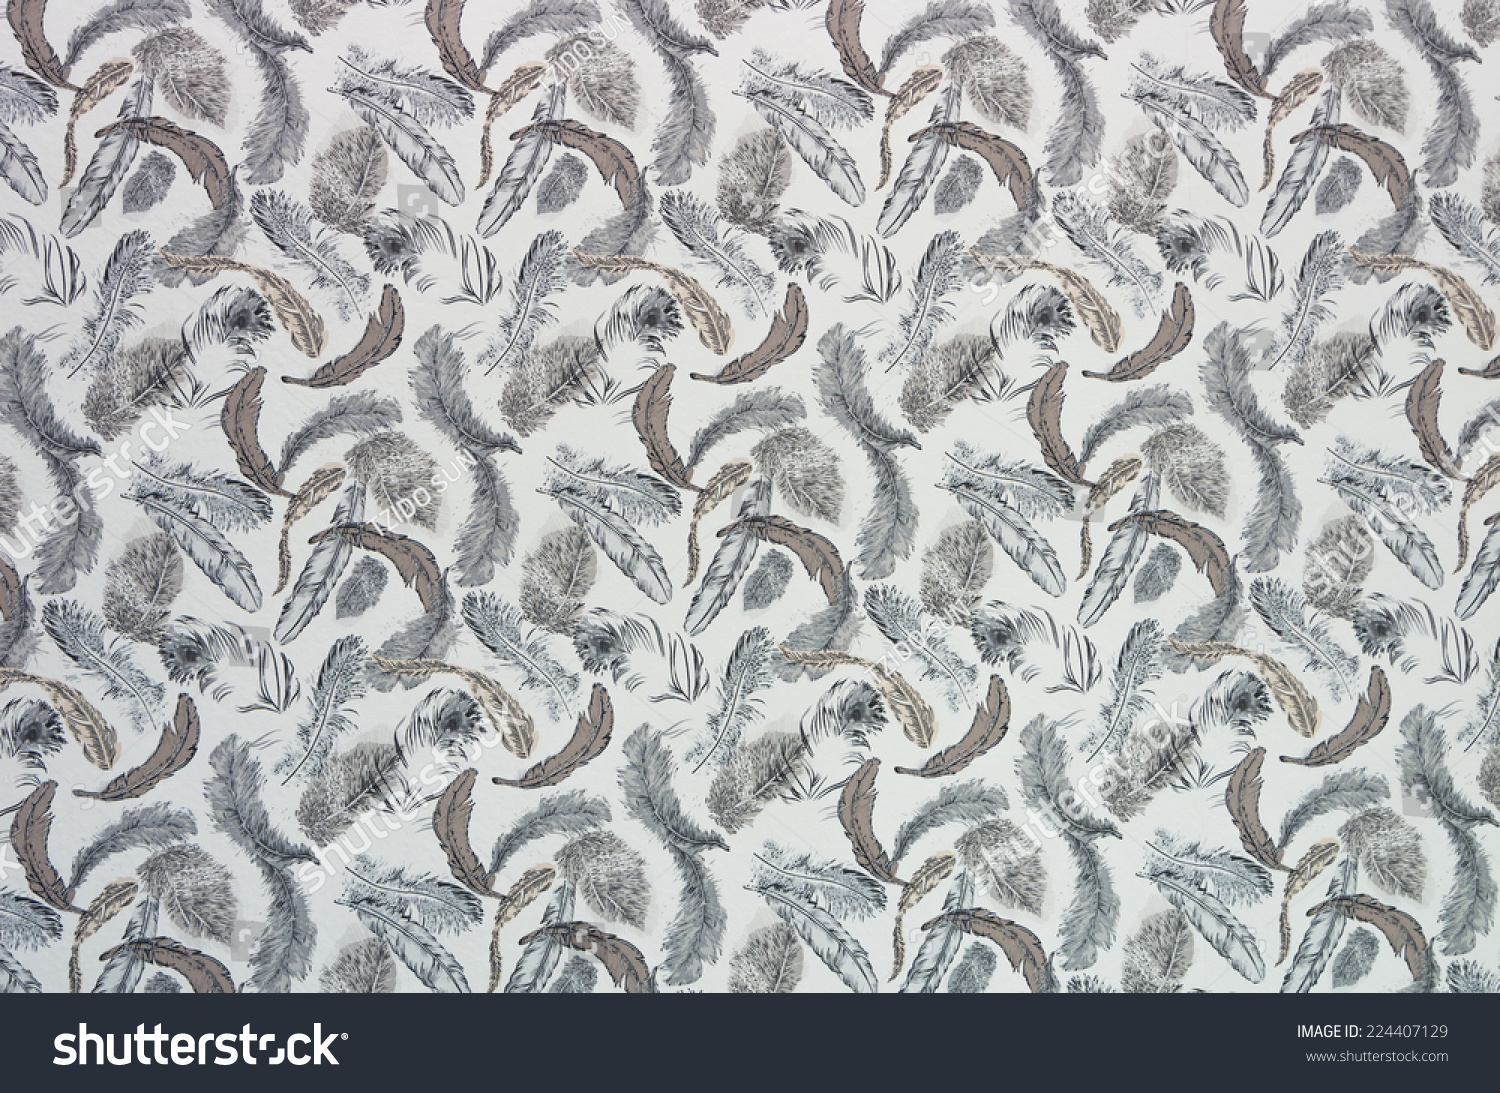 Seamless Feathers Pattern Wallpaper And Background